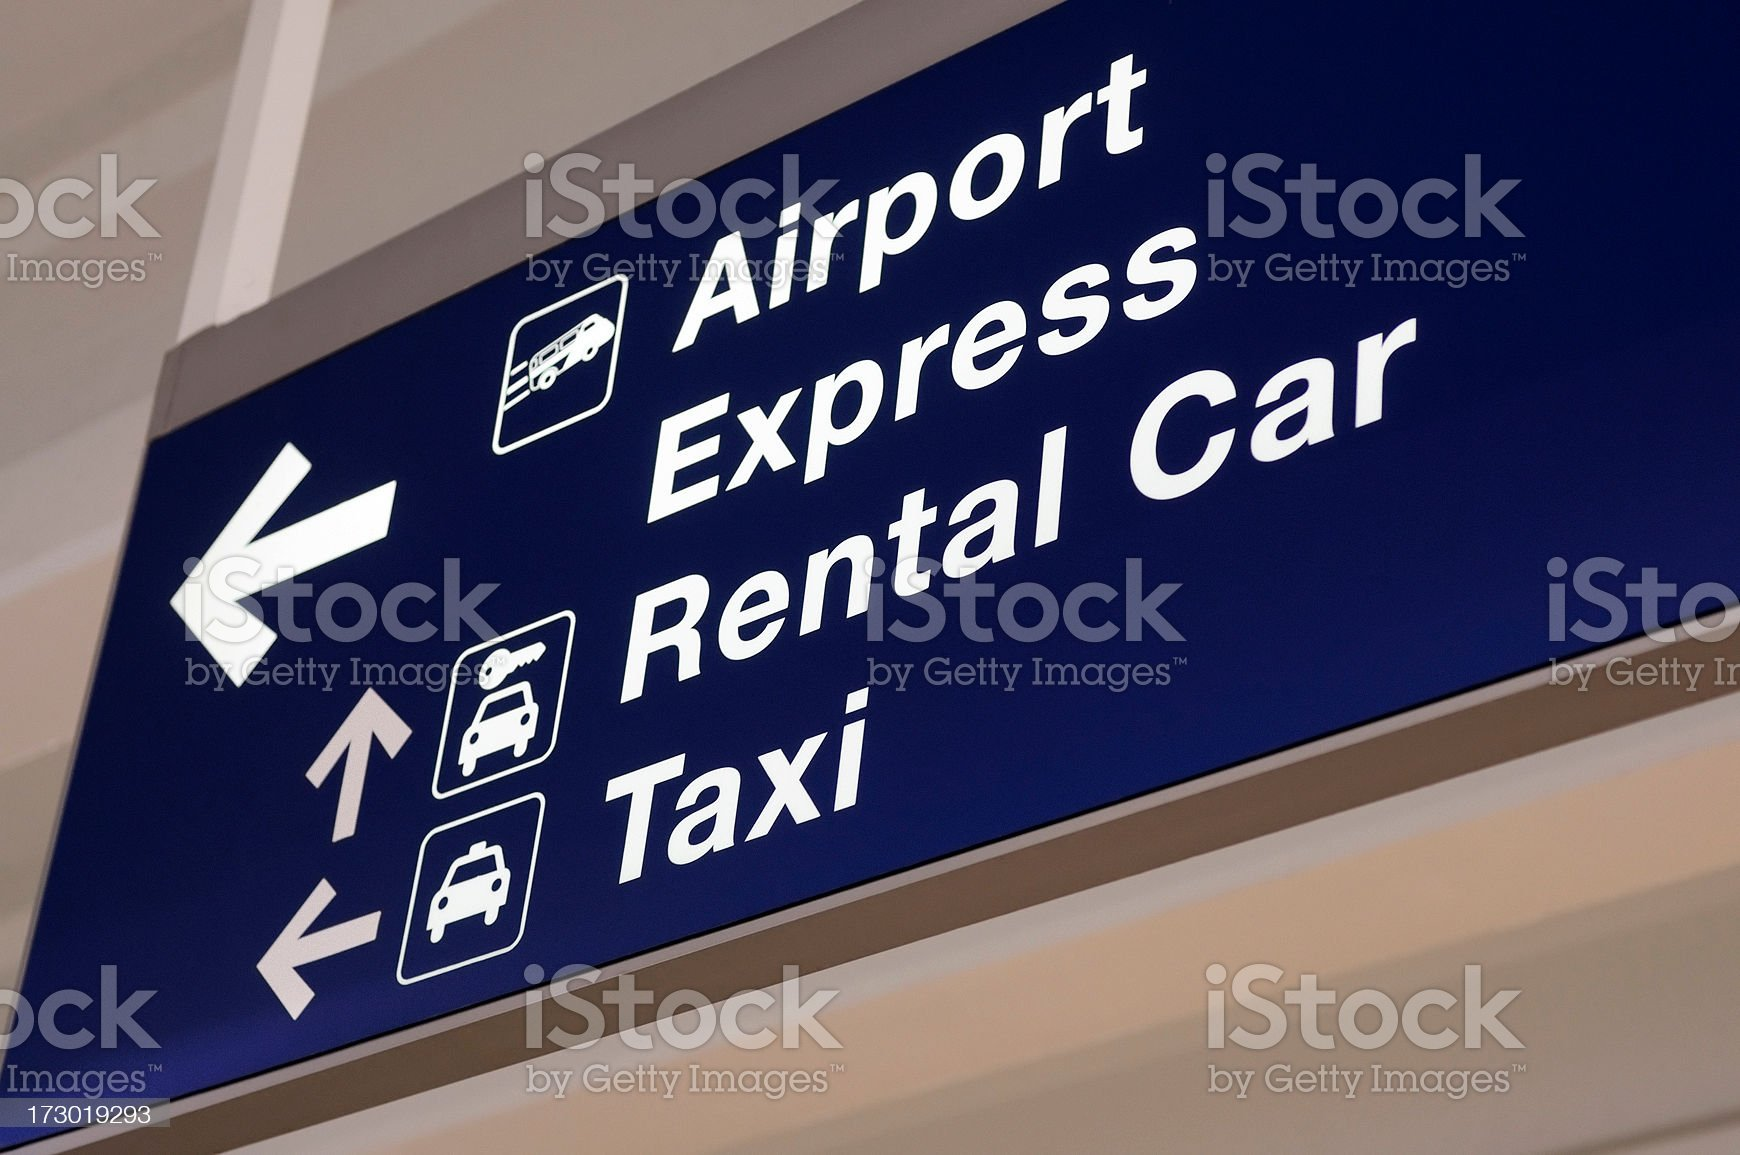 Airport Rental Car and Taxi Directional Overhead Sign royalty-free stock photo